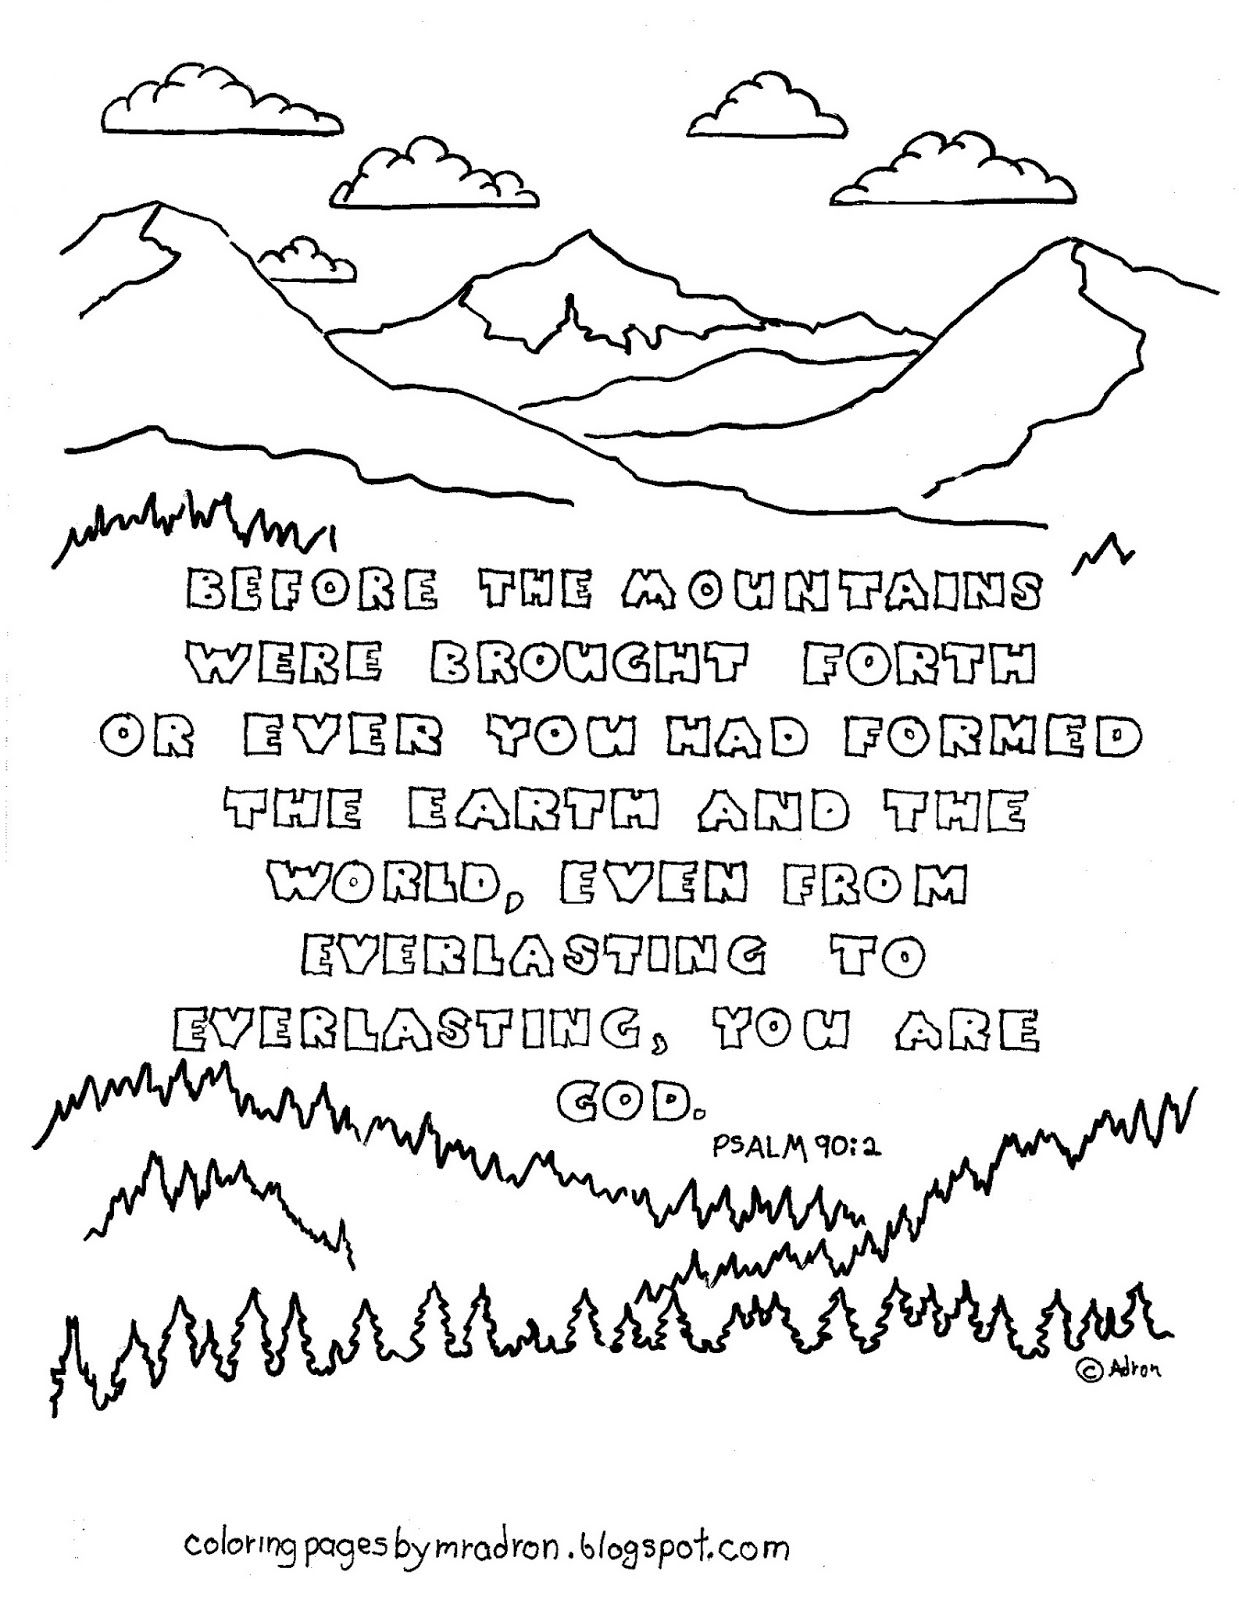 Printable Coloring Page Psalm 90 2 From Everlasting You Are God